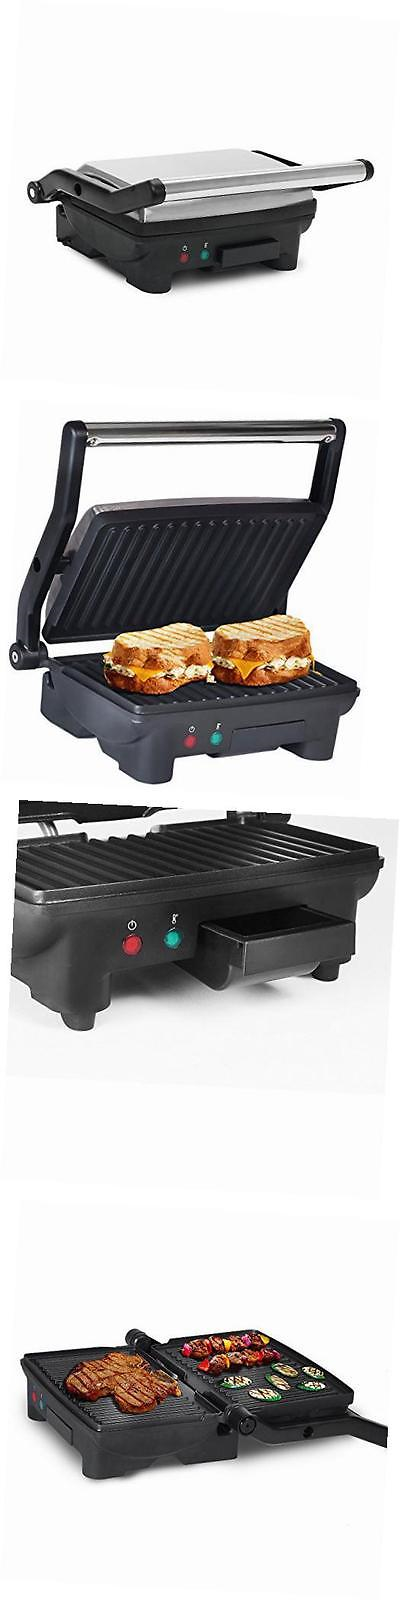 Grills and Griddles 20675: Large Electric Panini Sandwich Maker ...